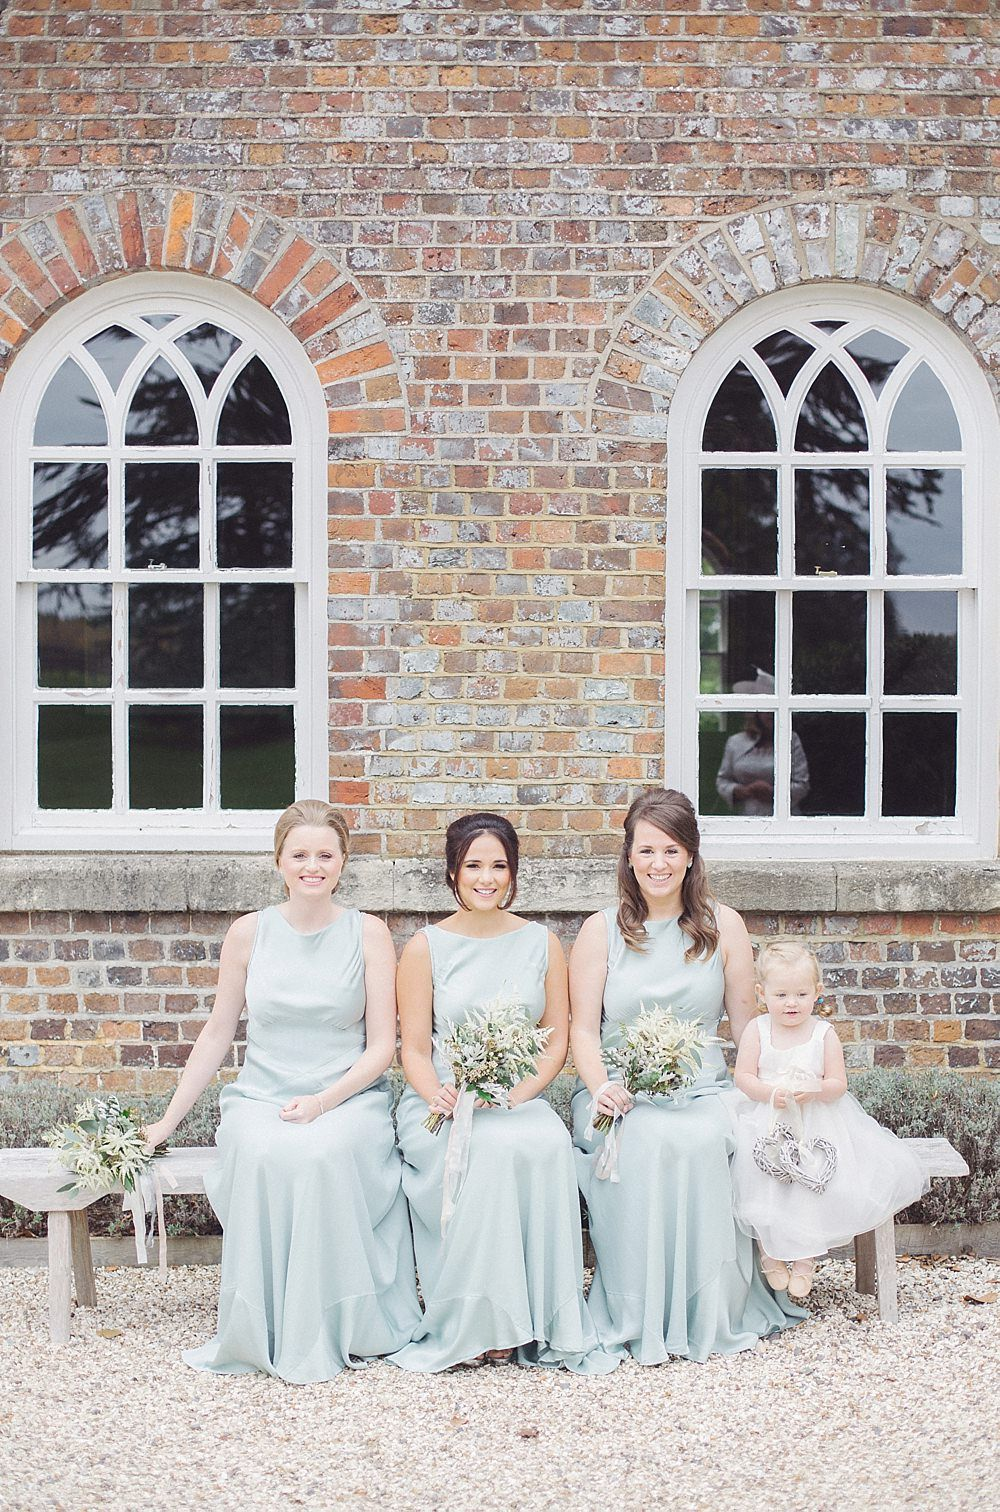 A lusan mandongus gown for a wedding at wise wedding venue with a a lusan mandongus gown for a wedding at wise wedding venue with a bright colour theme and rustic elements and photography by lm photography ombrellifo Gallery